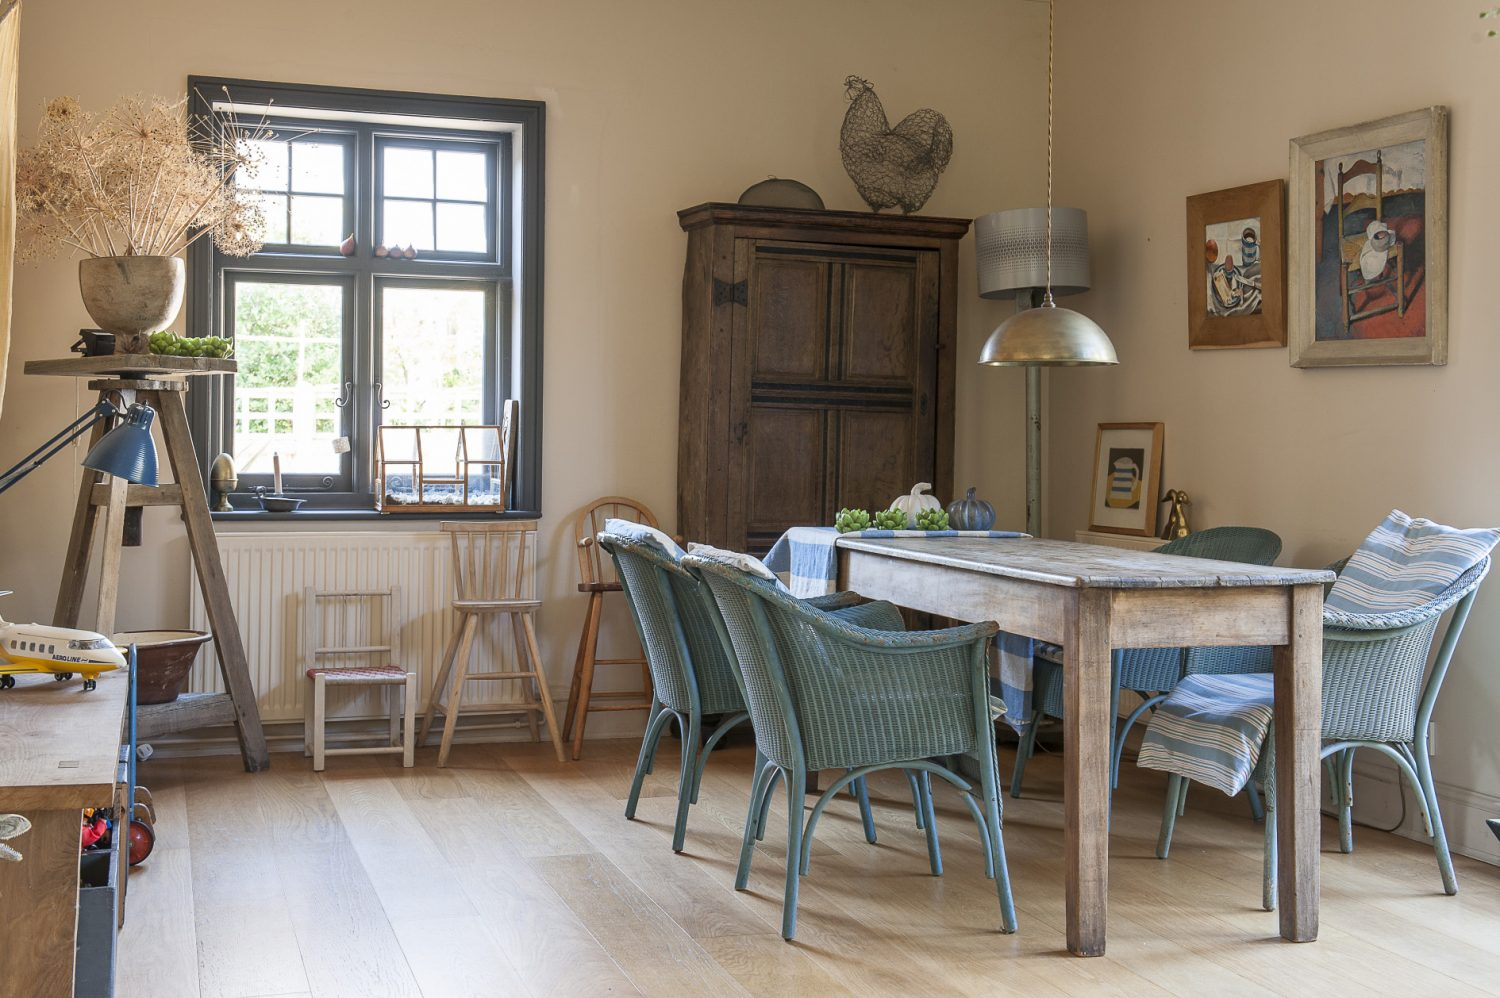 Lloyd Loom chairs from Francine's Suffolk home are a comfortable and informal addition to the refectory table, while the 17th-century Flemish wardrobe acts as a perch for a wire sculpture of one of Francine's Buff Orpington hens, by the Norfolk sculptor Jenny Goater